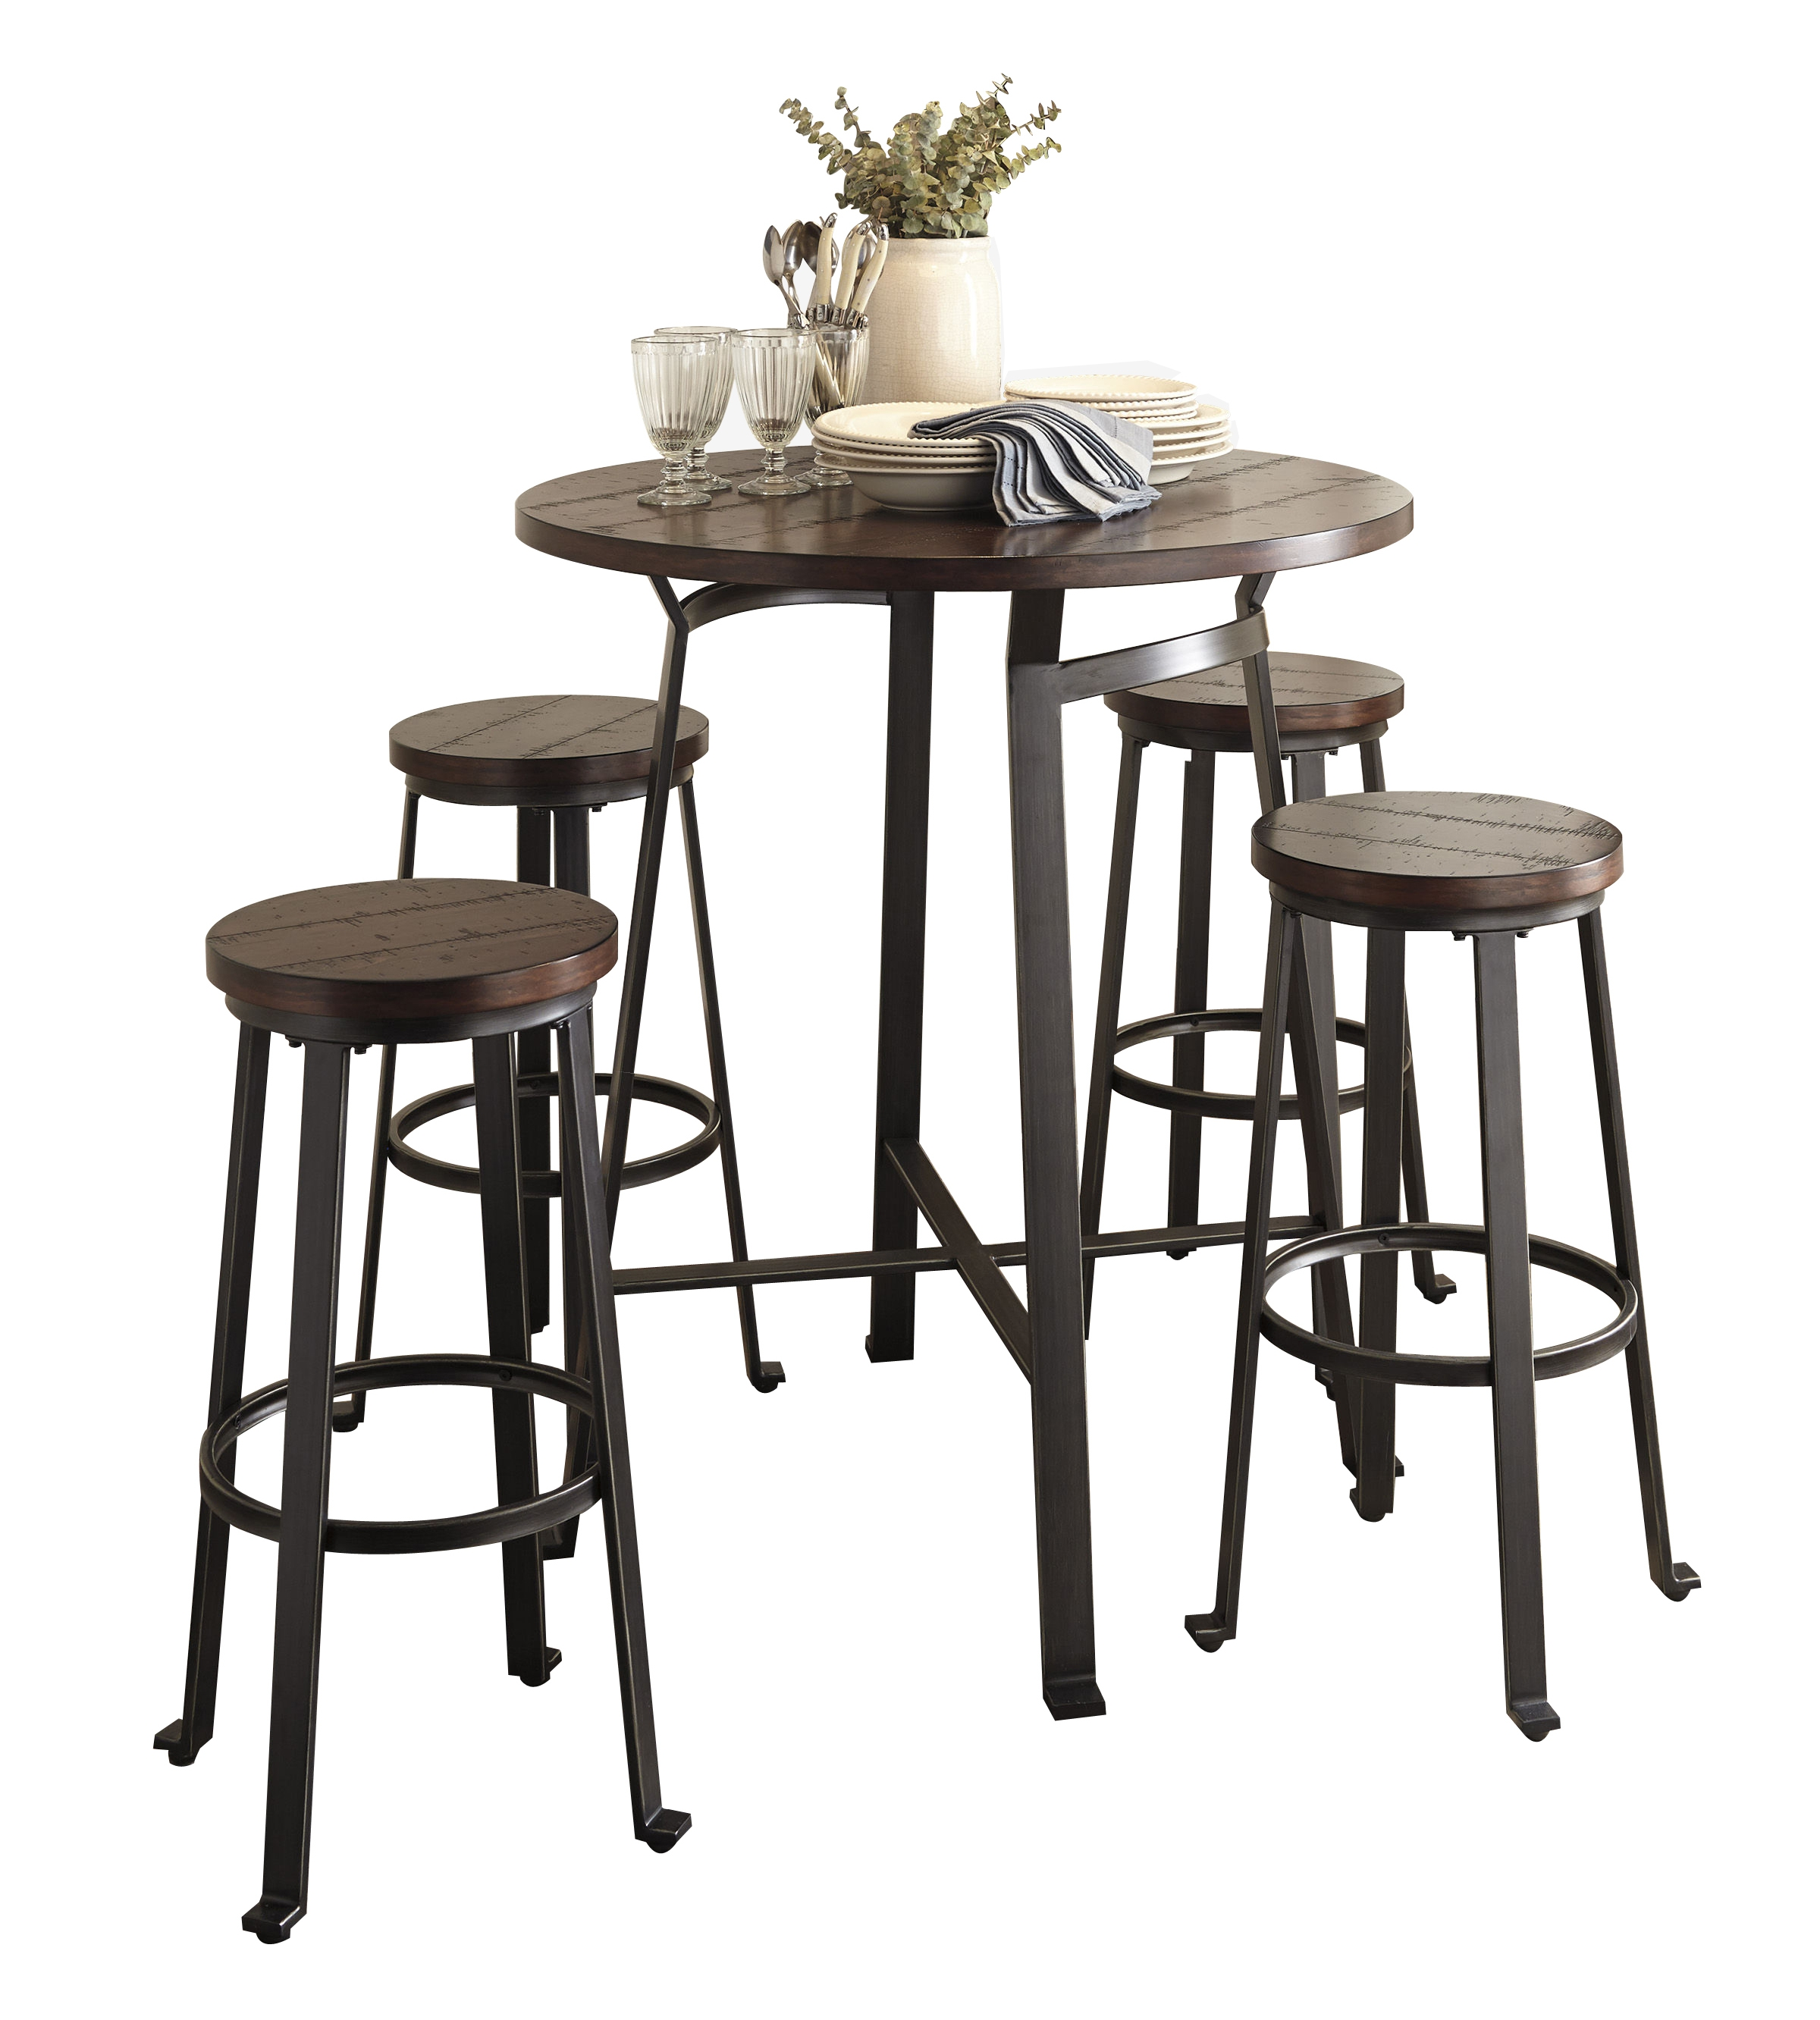 Ashley Furniture Challiman 5pc Bar Height Set The Classy